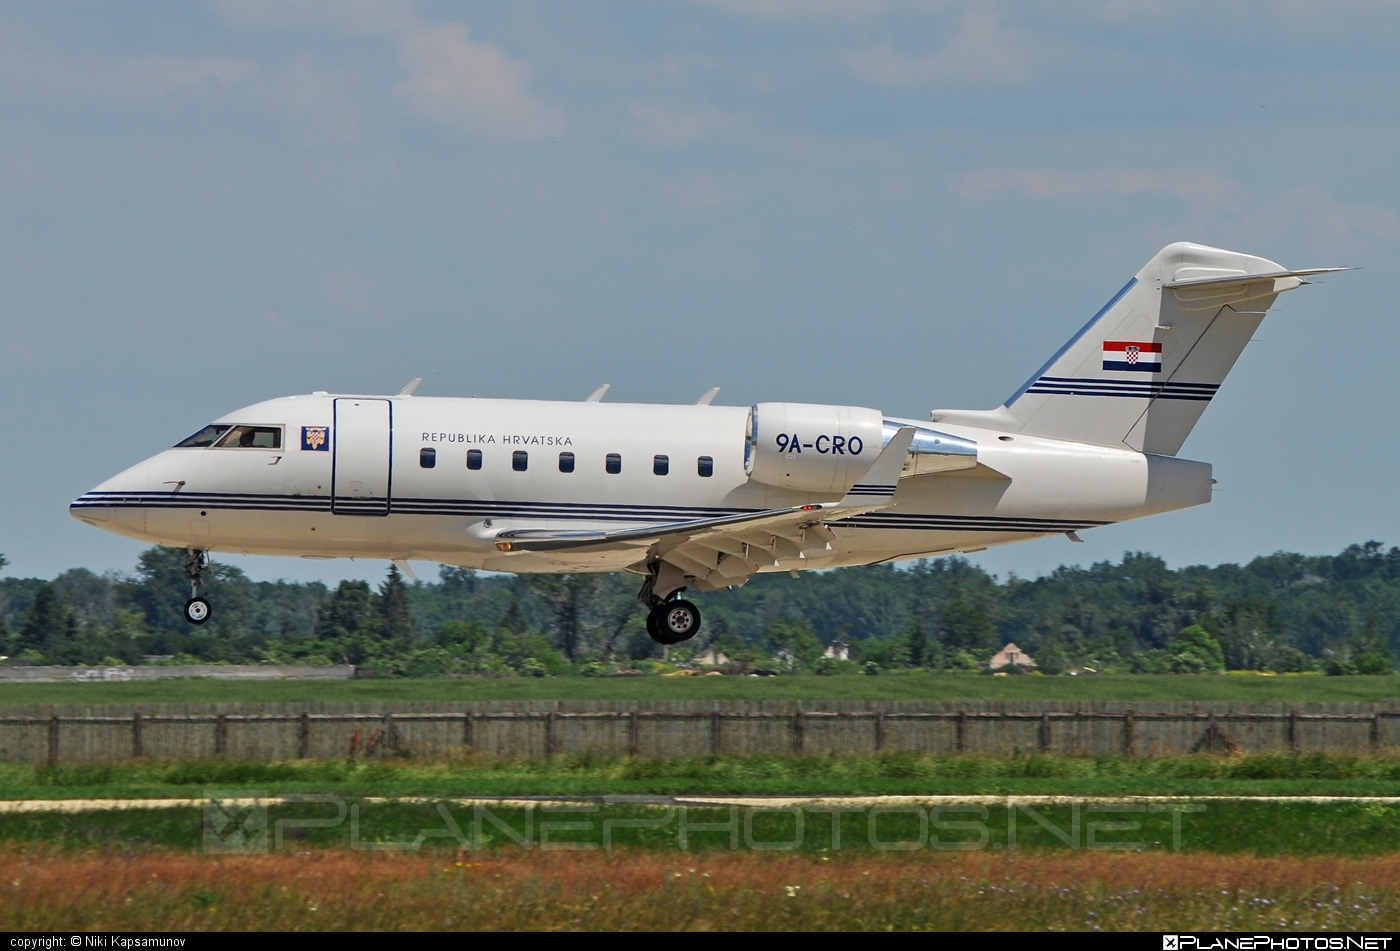 Canadair Challenger 604 (CL-600-2B16) - 9A-CRO operated by Vlada Republike Hrvatske (Croatian Government) #canadair #challenger604 #cl6002b16